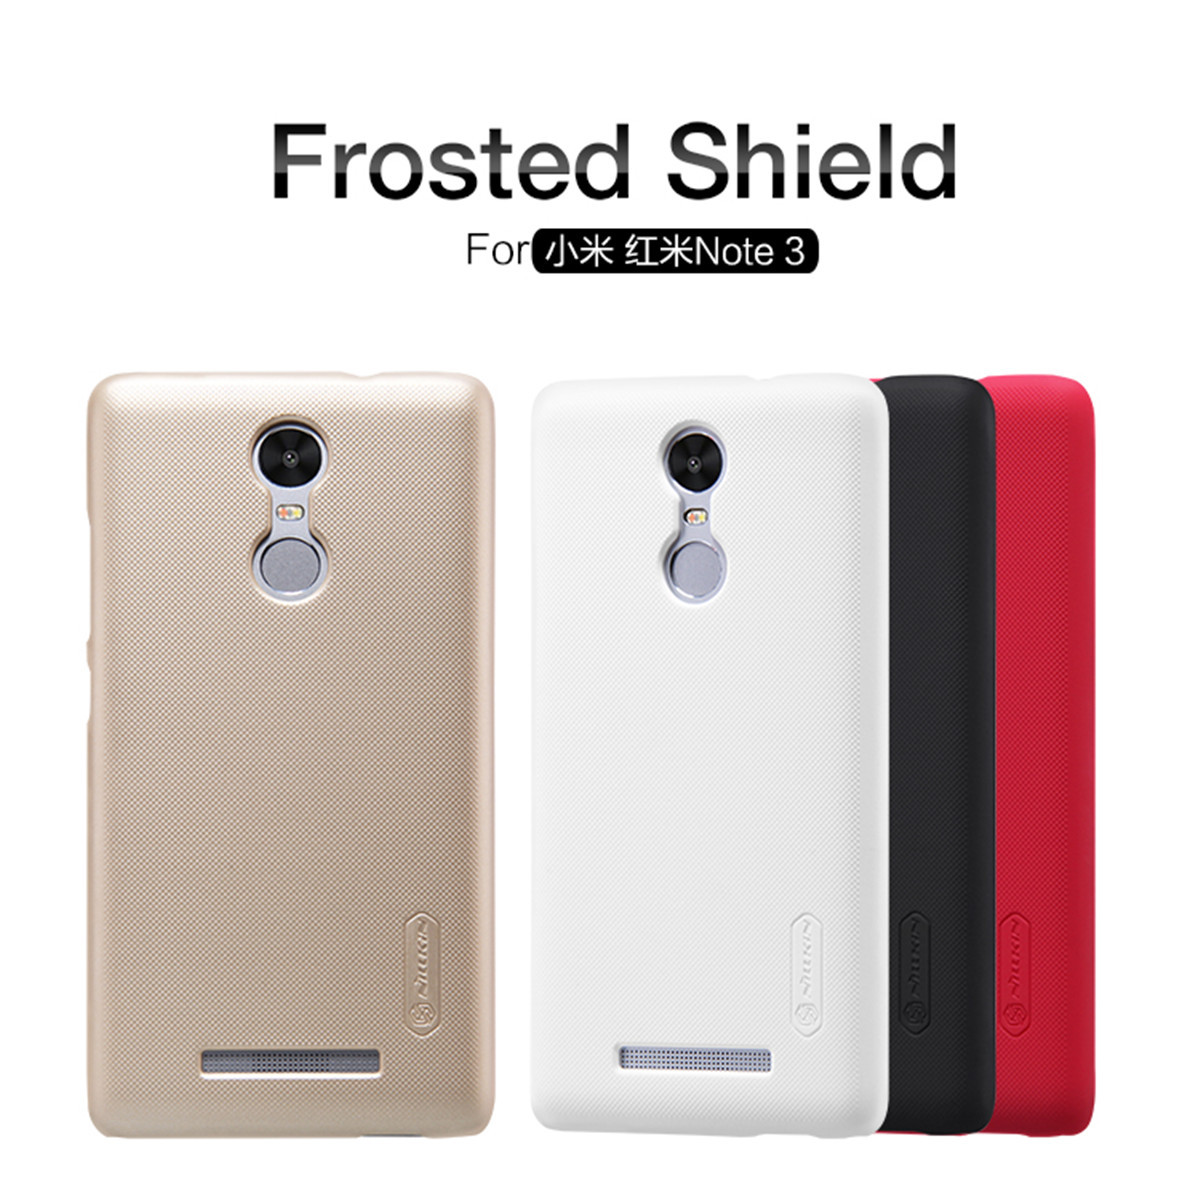 NILLKIN Frosted Shield Matte PC Hard Back Cover Case For Xiaomi Redmi Note 3 чехол для xiaomi redmi 5 nillkin super frosted shield case черный